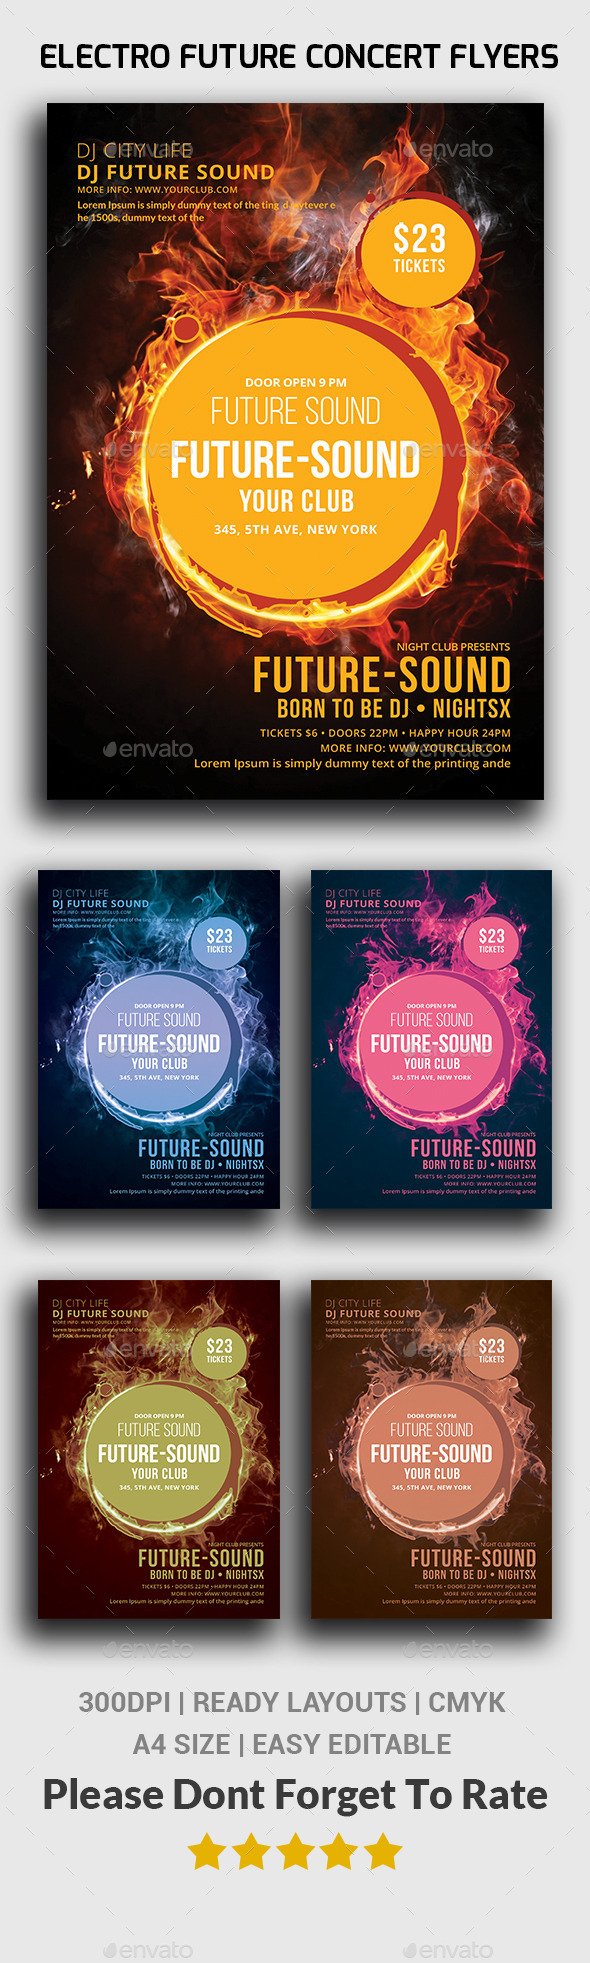 Electro Future Concert Flyers - Events Flyers